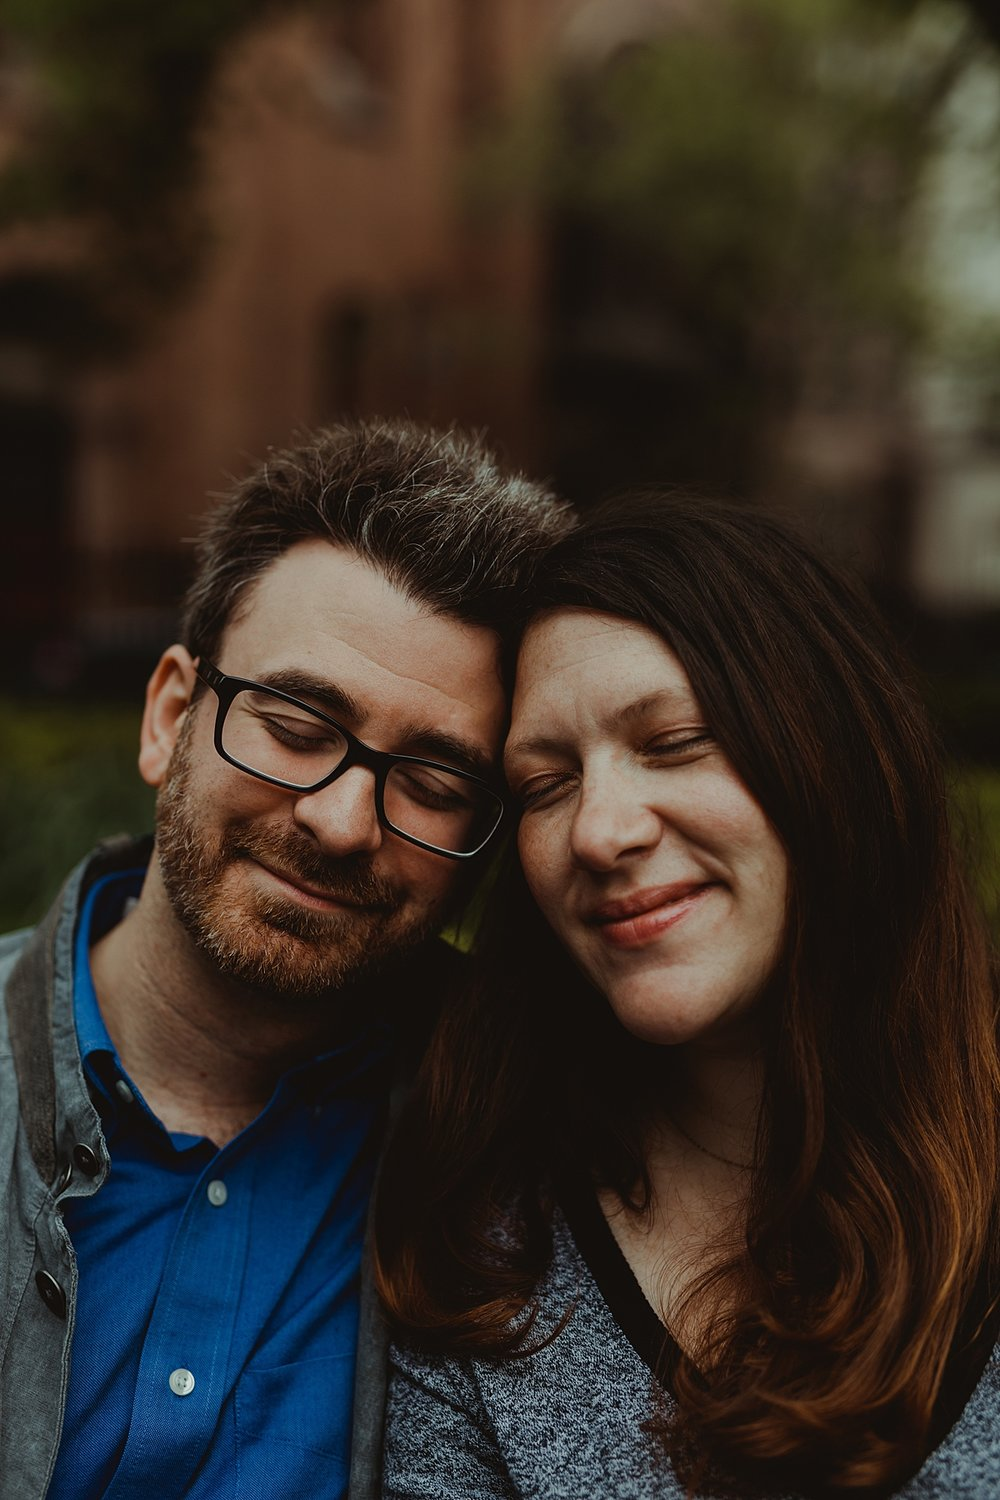 portrait of expecting husband and wife with their eyes closed during outdoor maternity photo session in new york city. photo by nyc family and newborn photographer krystil mcdowall